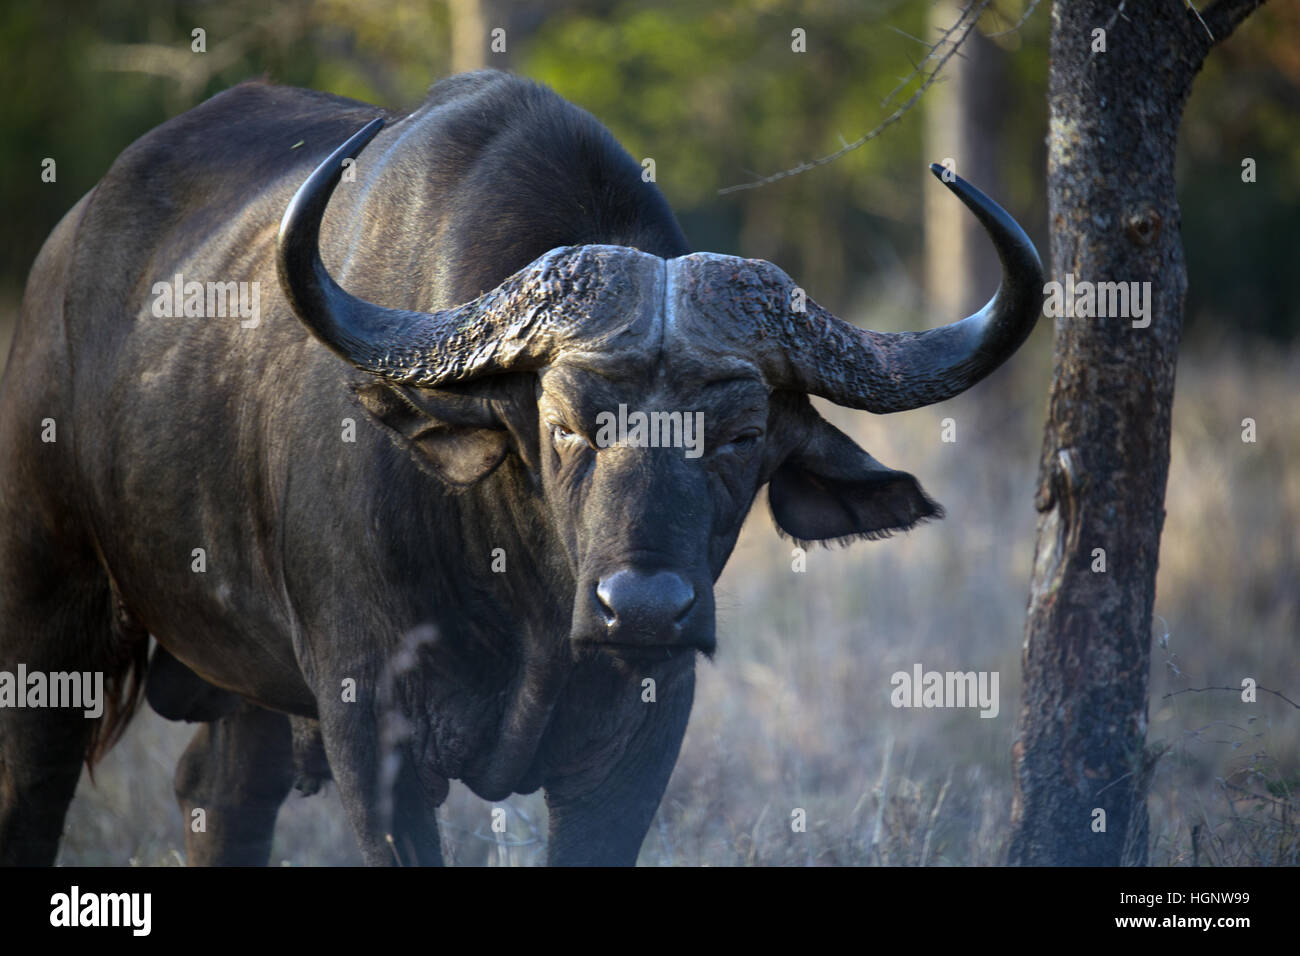 Older buffalo standing in dry grass - Stock Image